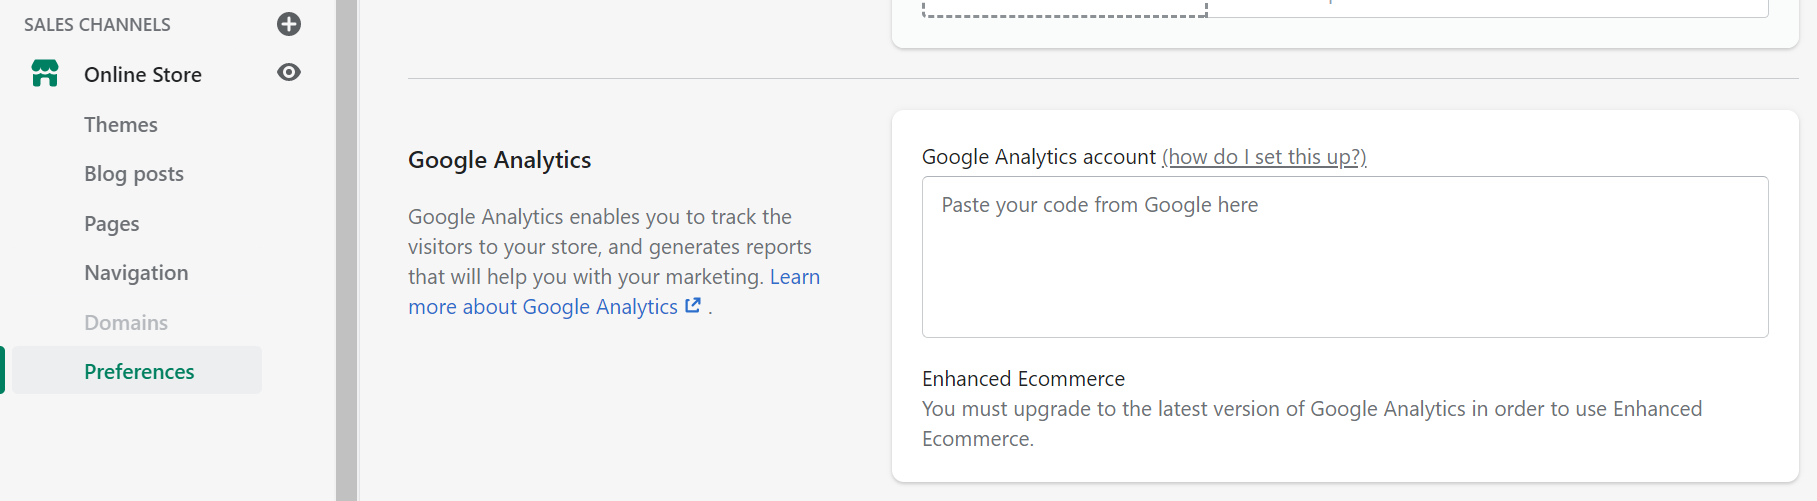 Google Analytics in Shopify